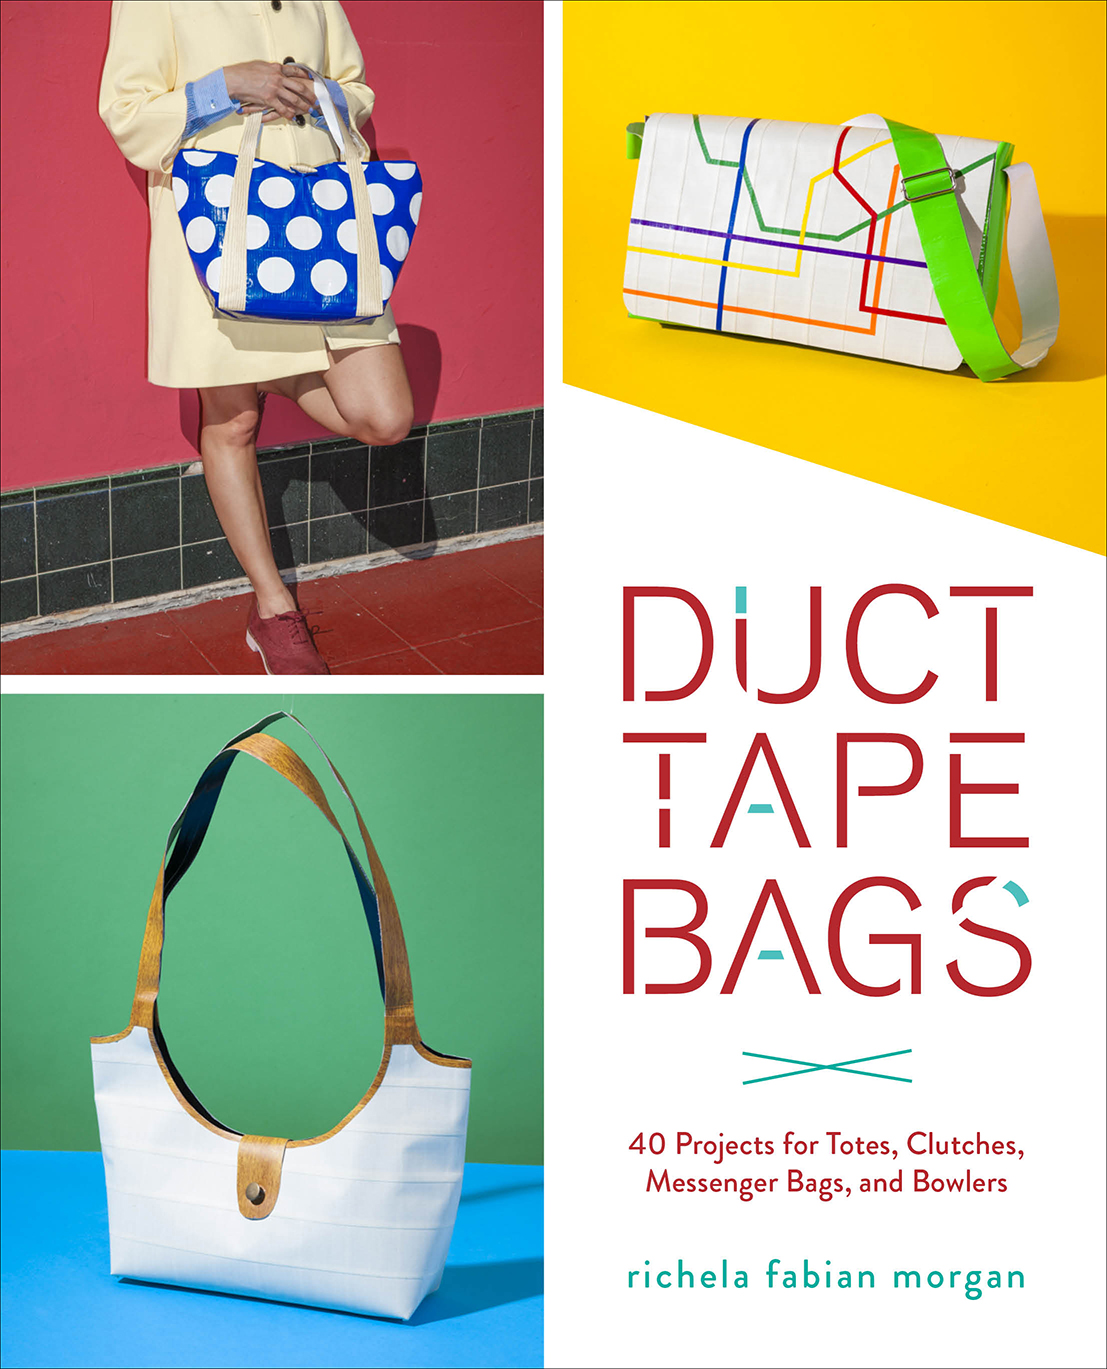 ducttapebags